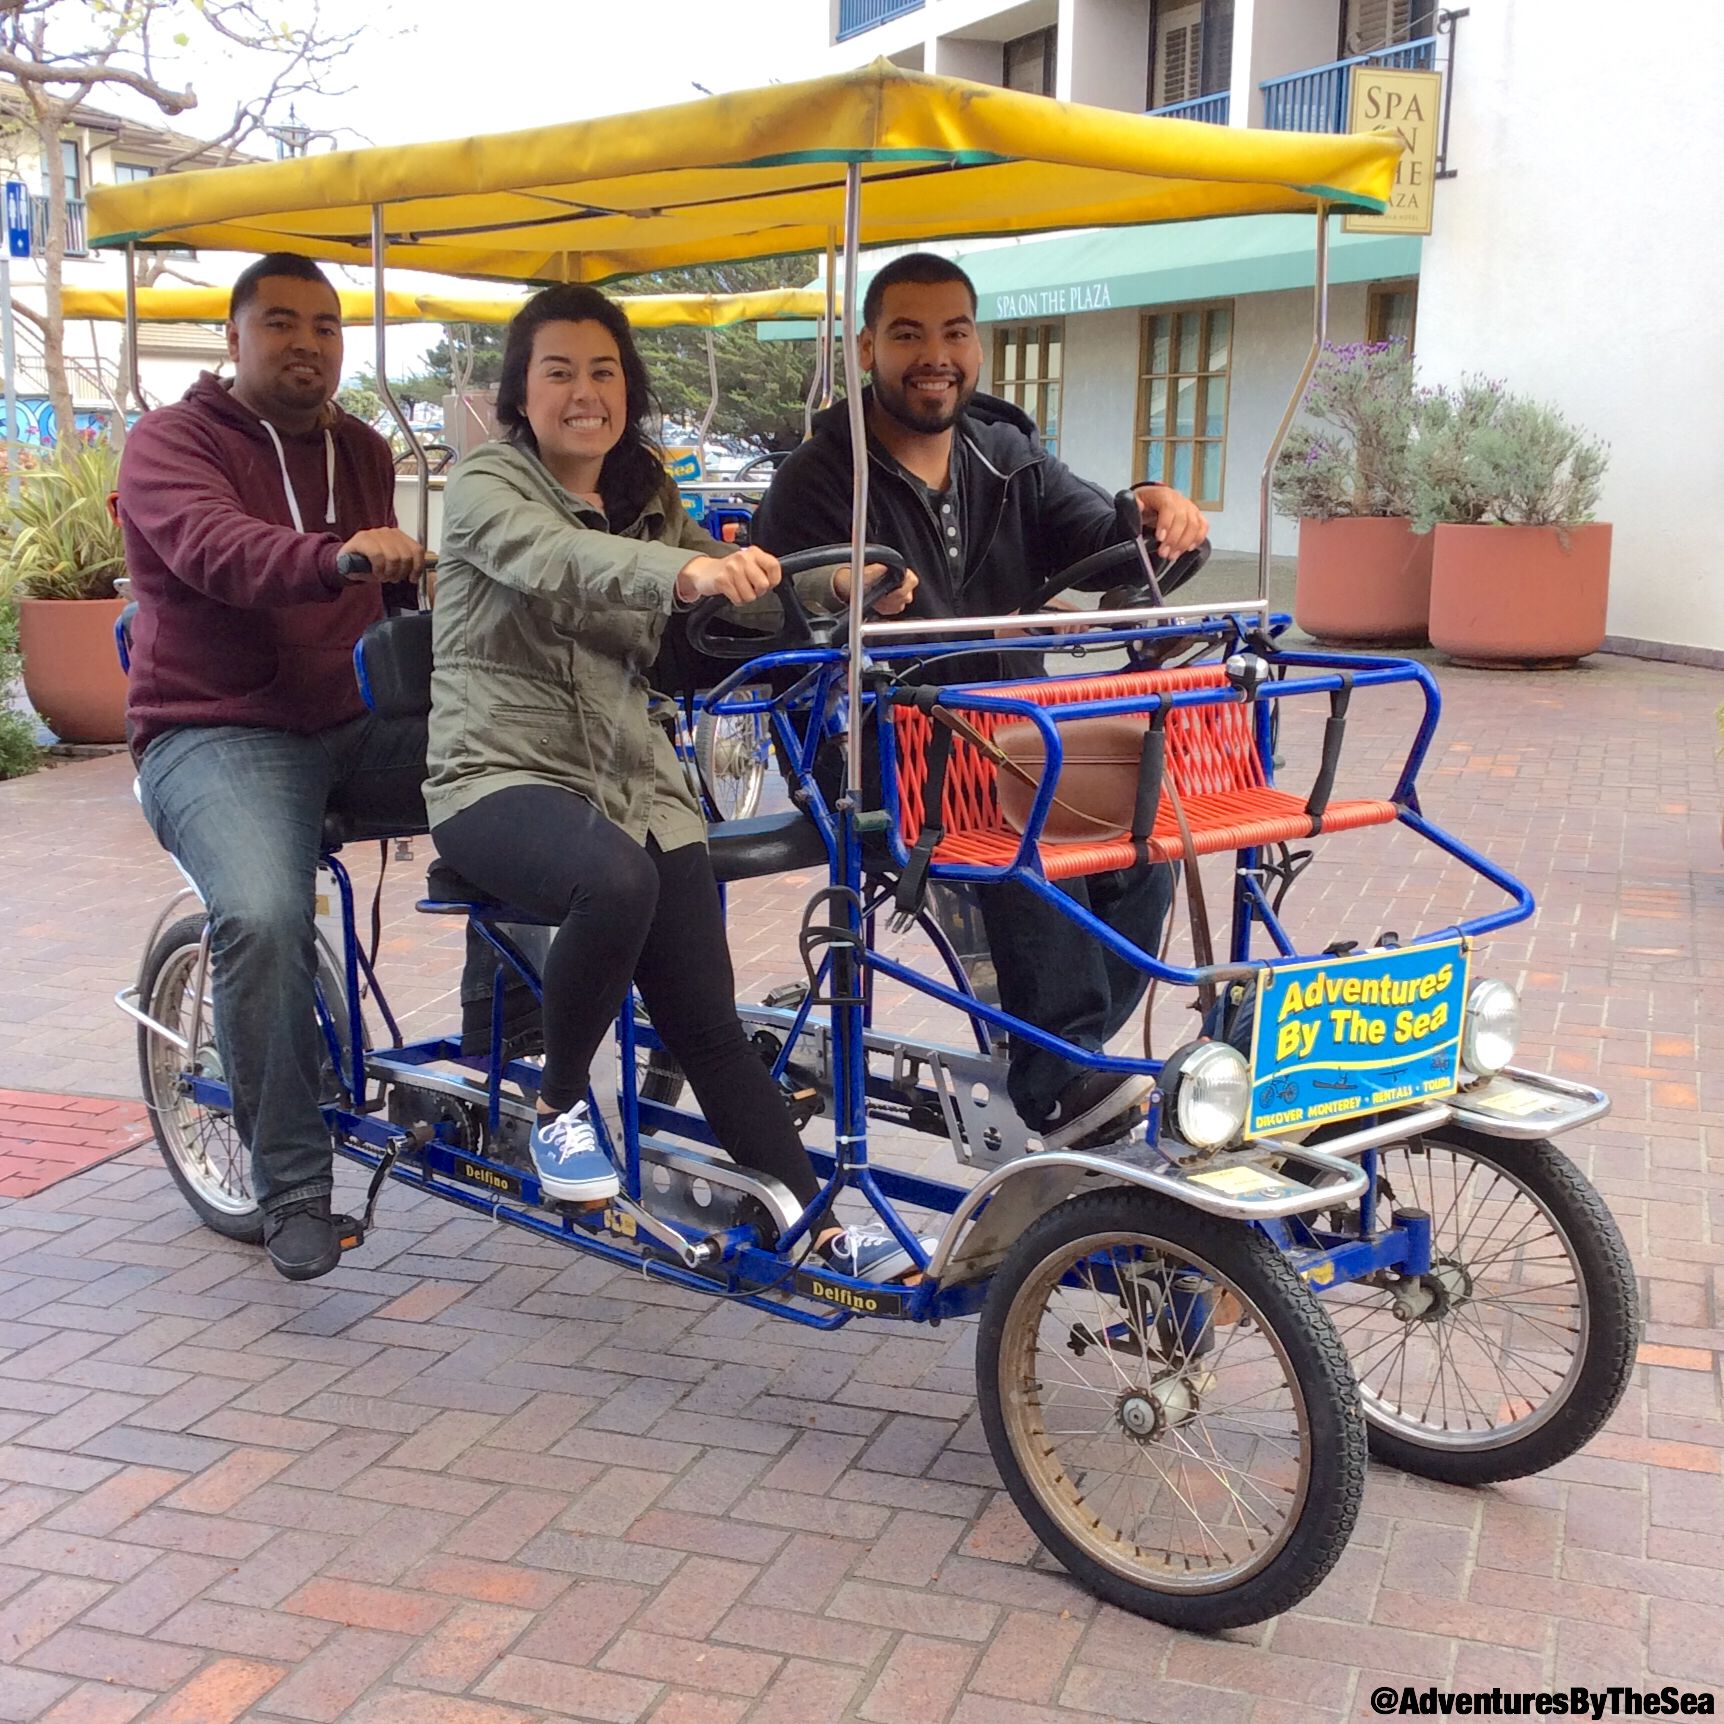 You Can Rent A Surrey And Cruise The Scenic Monterey Bike Trail